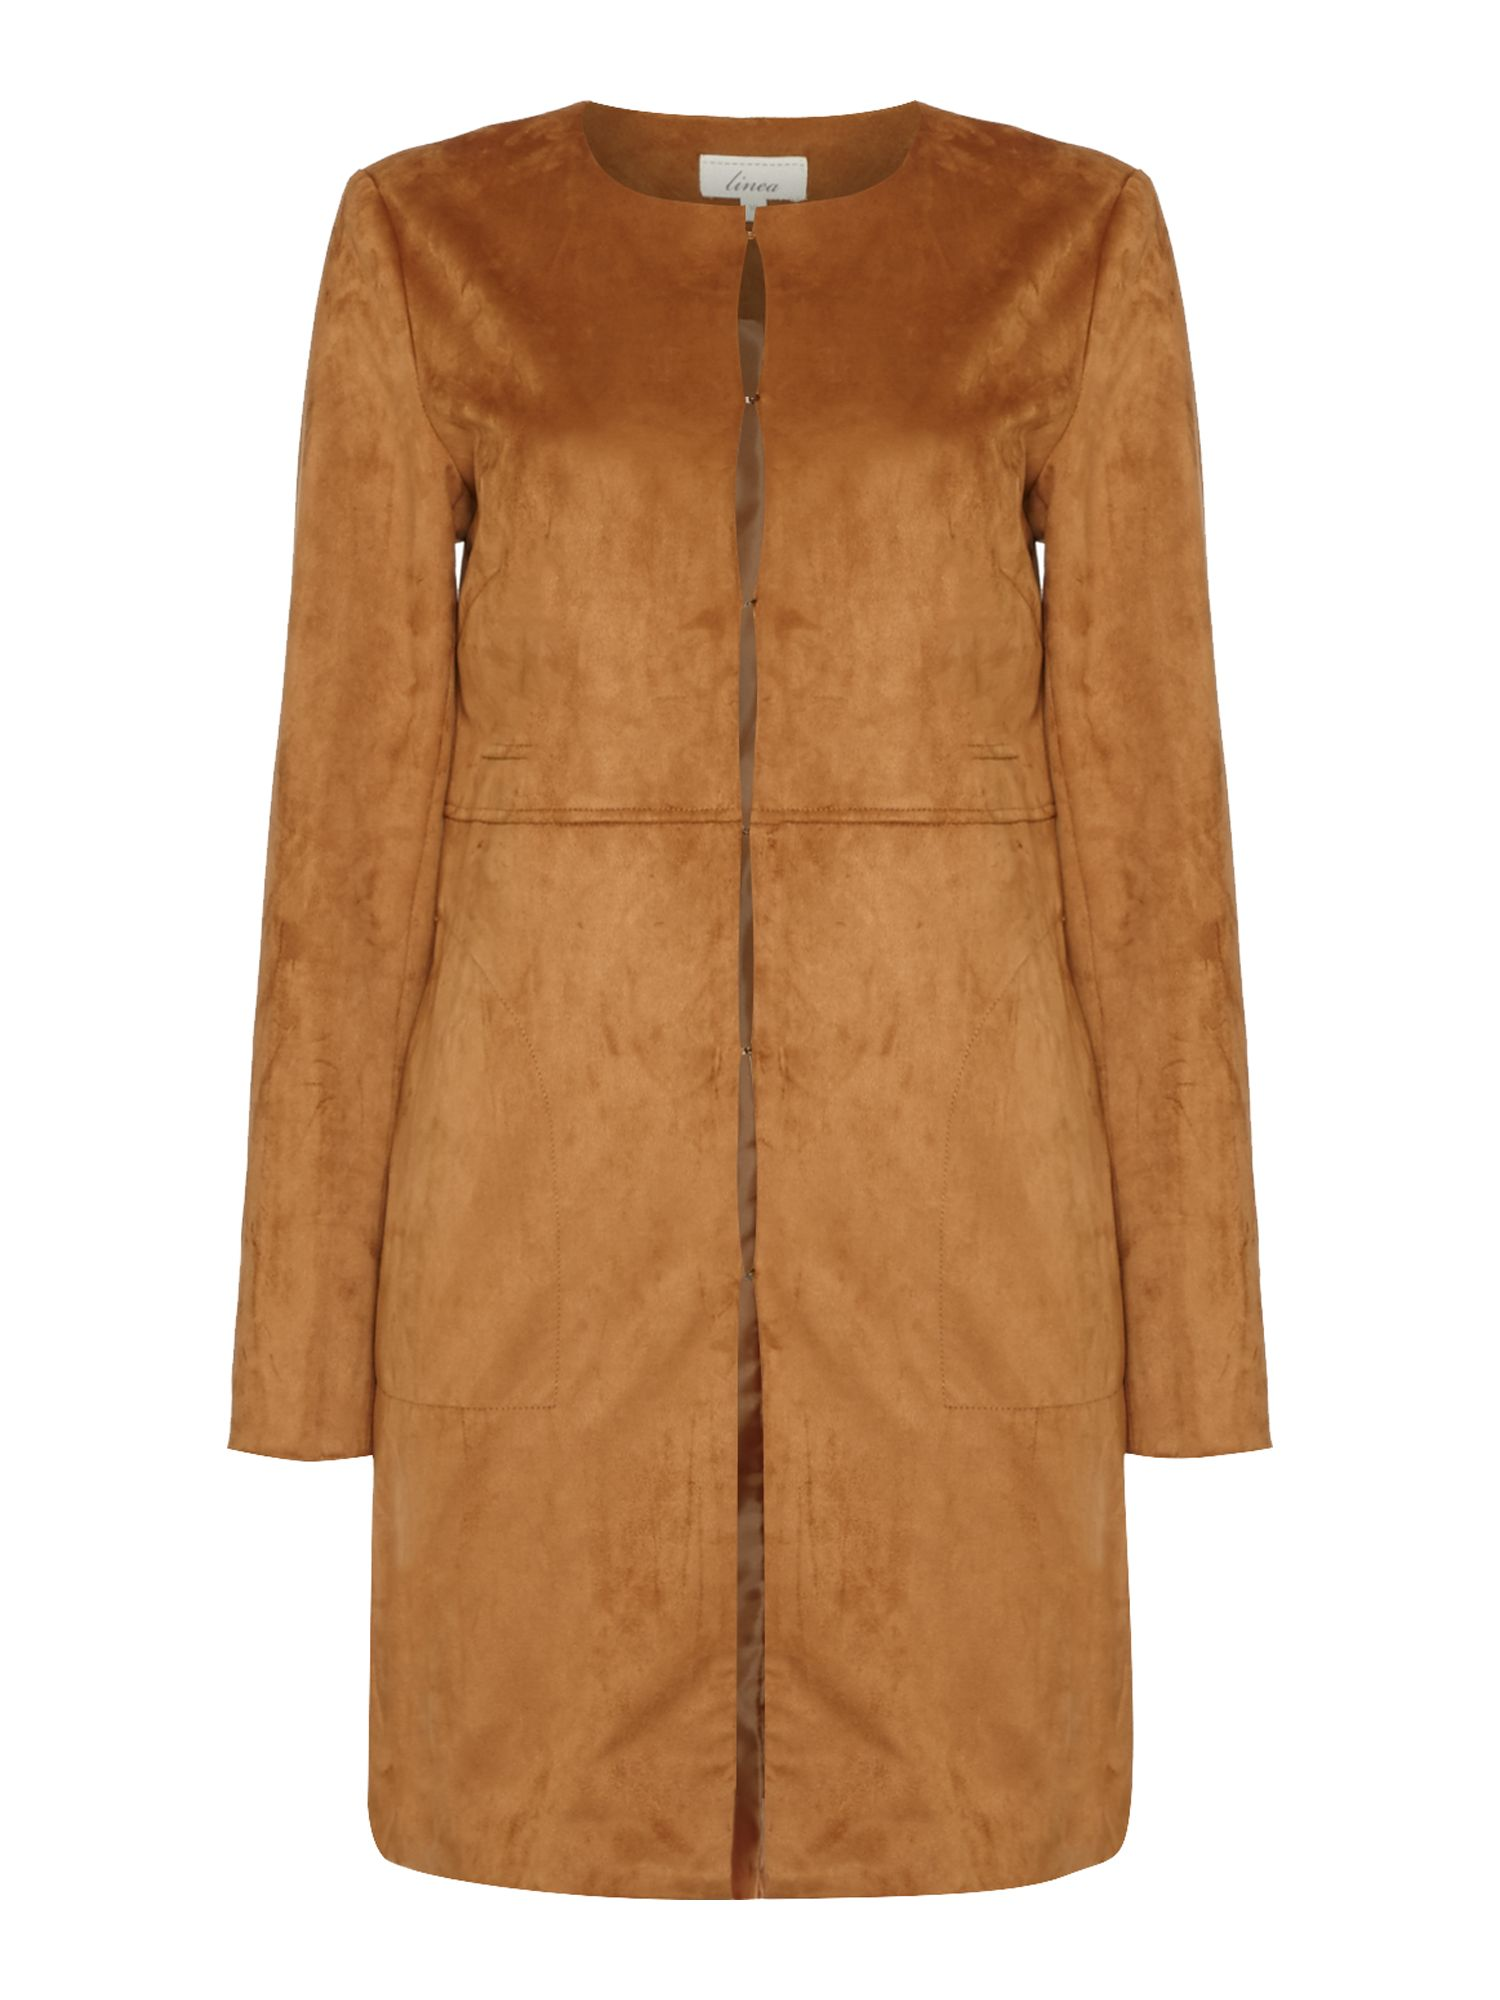 Linea SIENNA SUEDETTE EDGE TO EDGE COAT, Tan